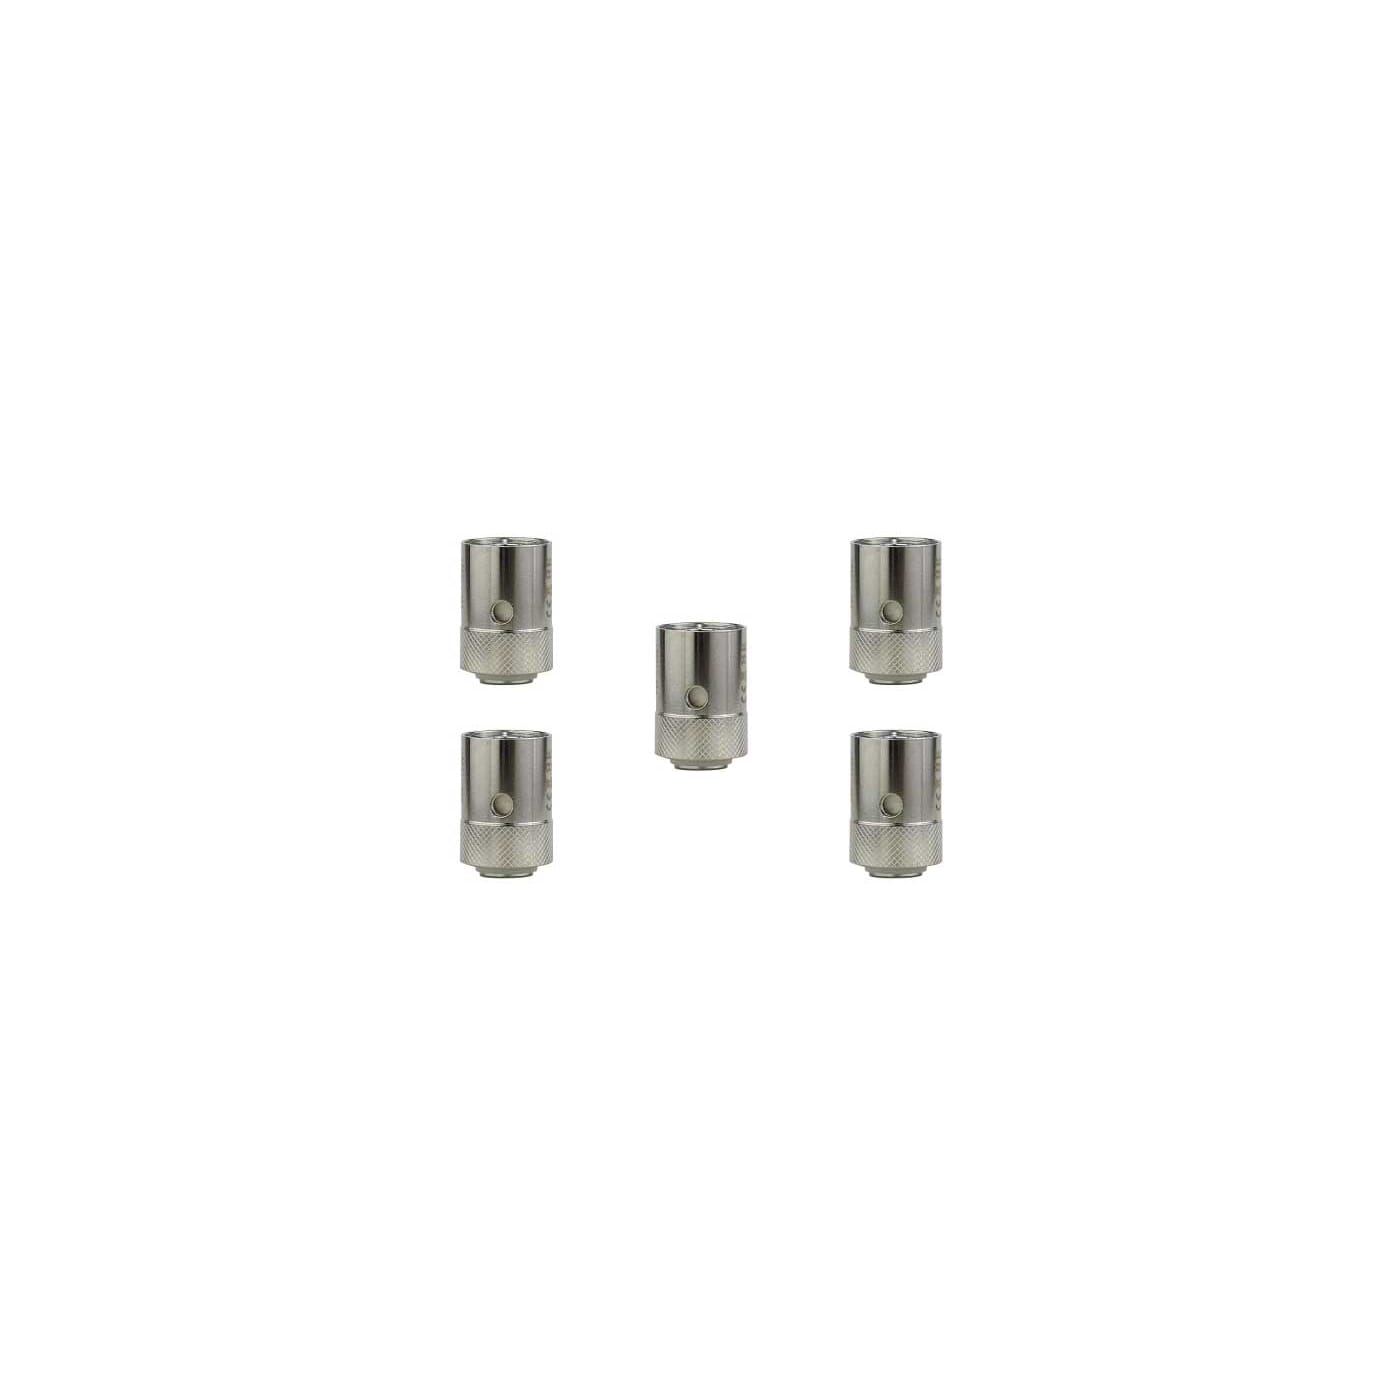 Wholesale Kanger CLOCC Nichrome Replacement Coils 5 Pack